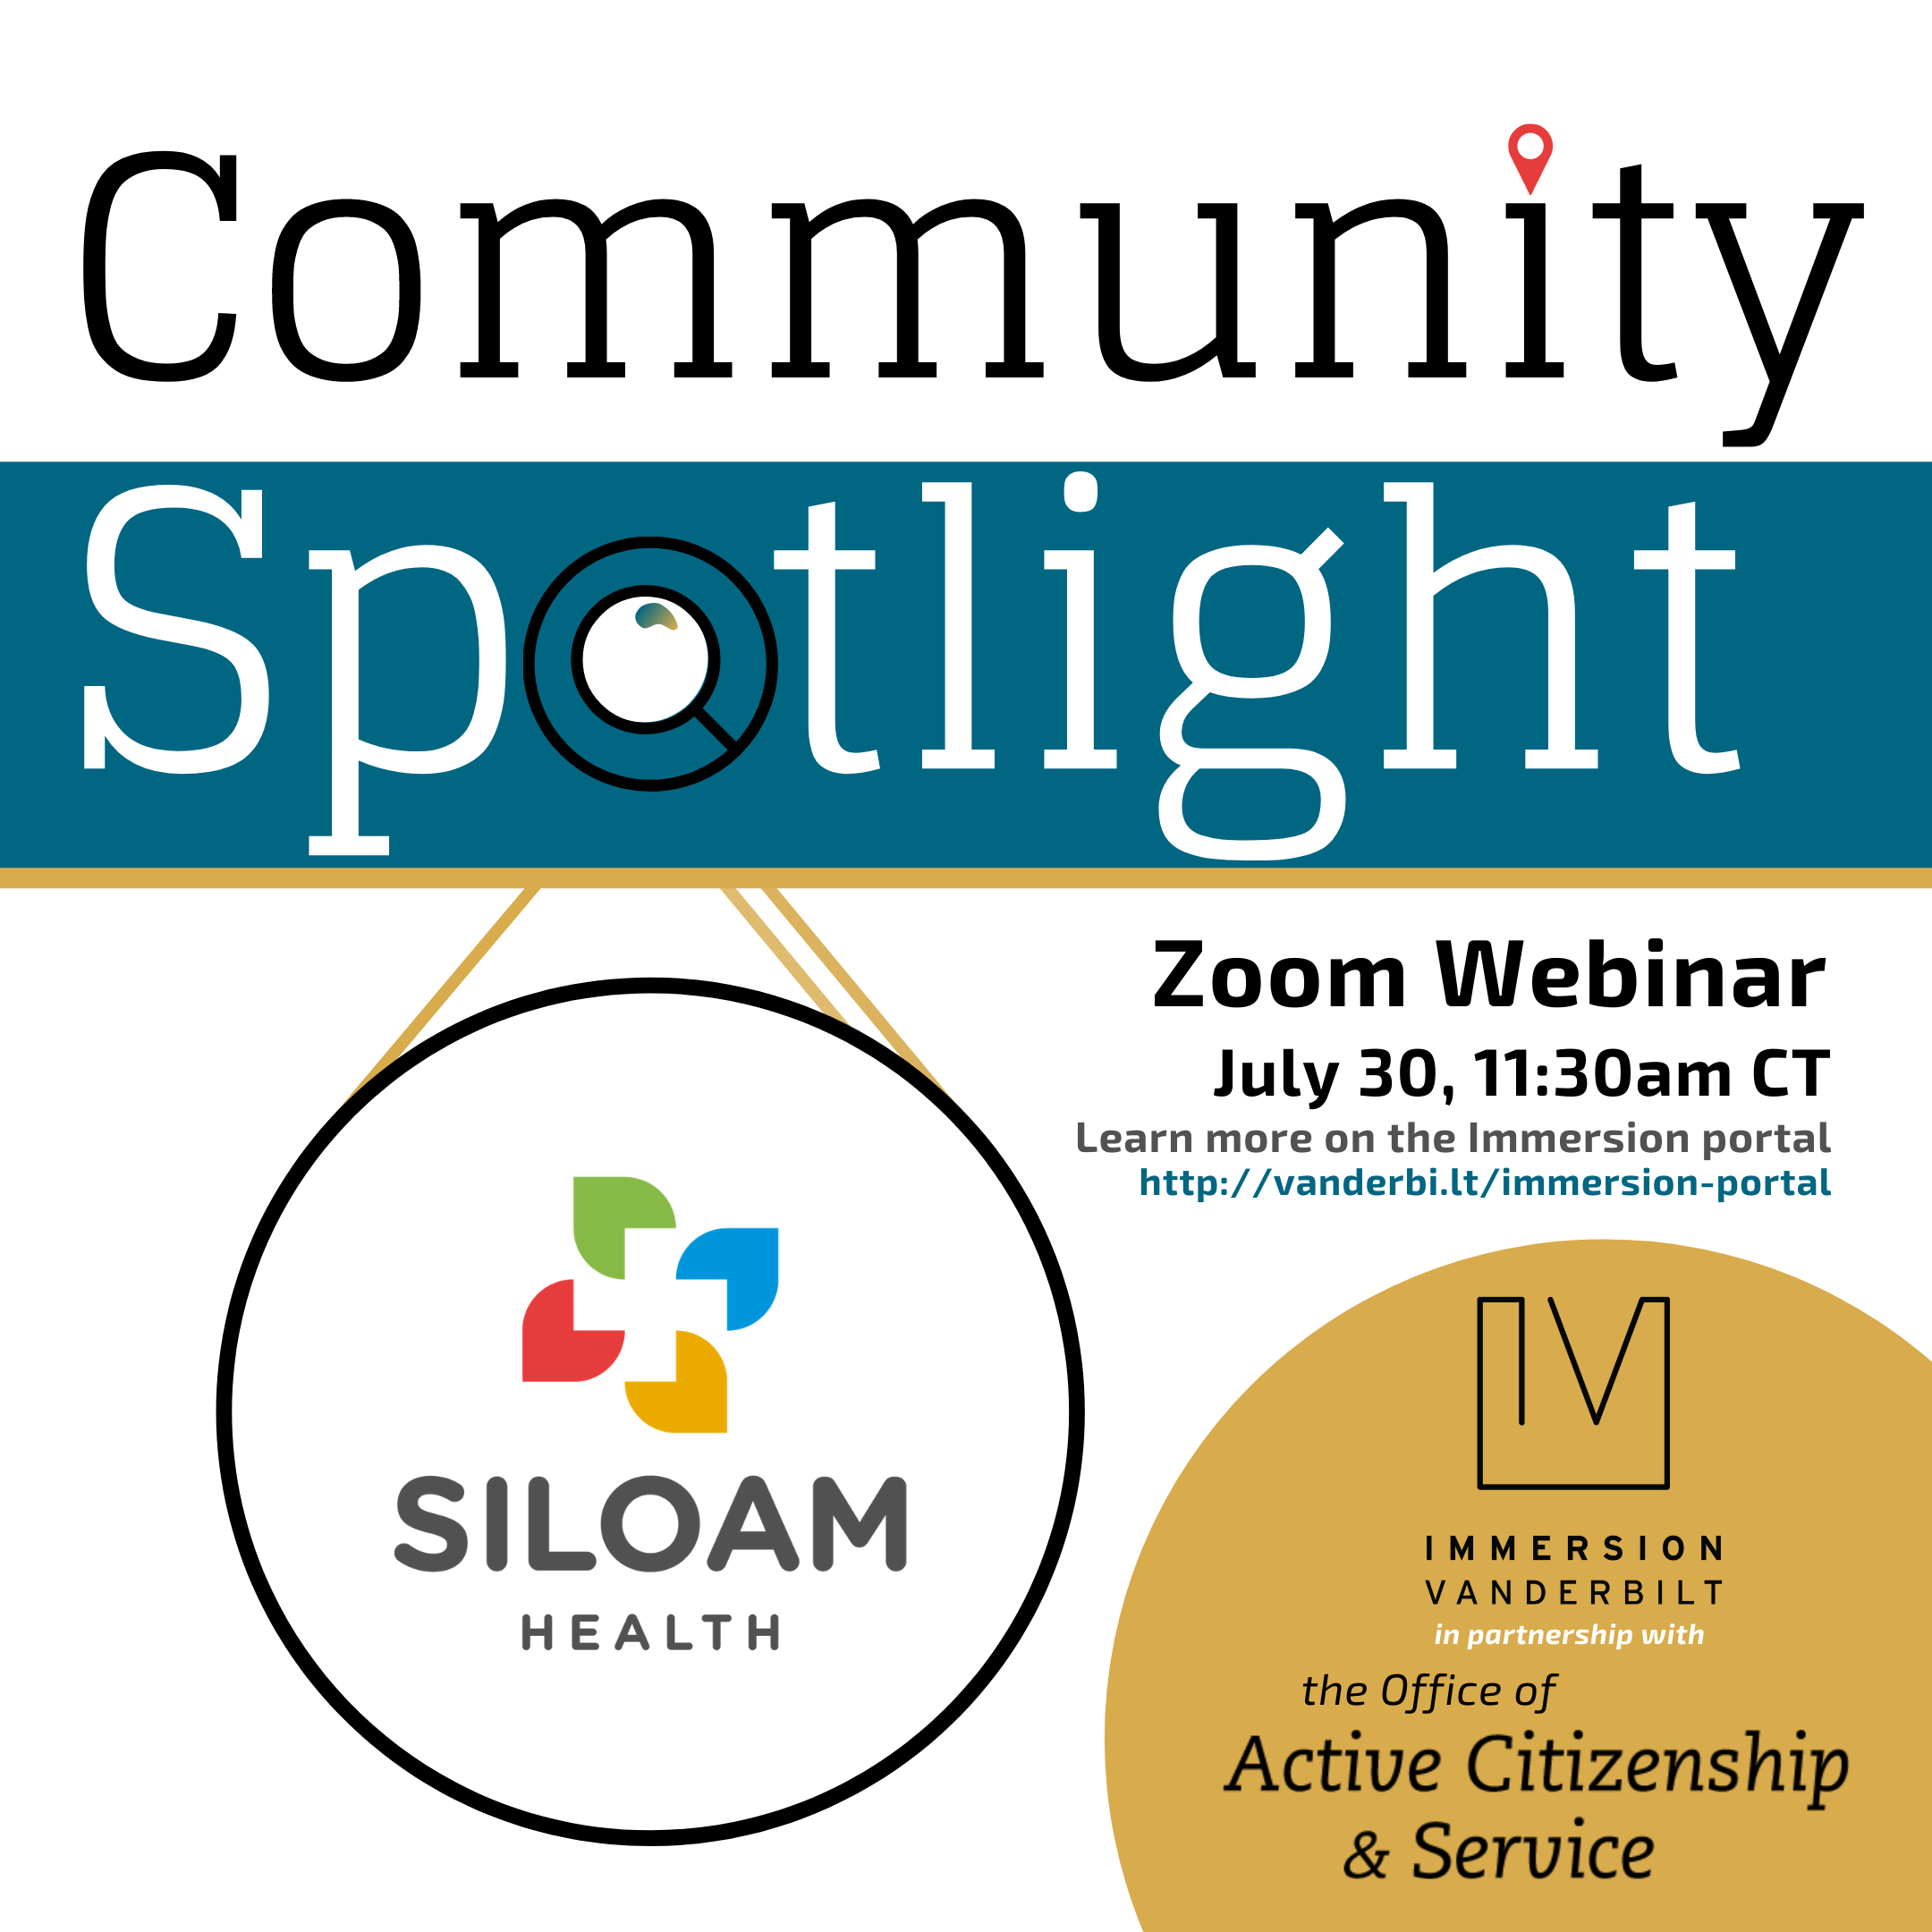 Graphic advertising a Zoom webinar with Siloam Health, depicting a magnifying glass spotlighting Siloam's logo